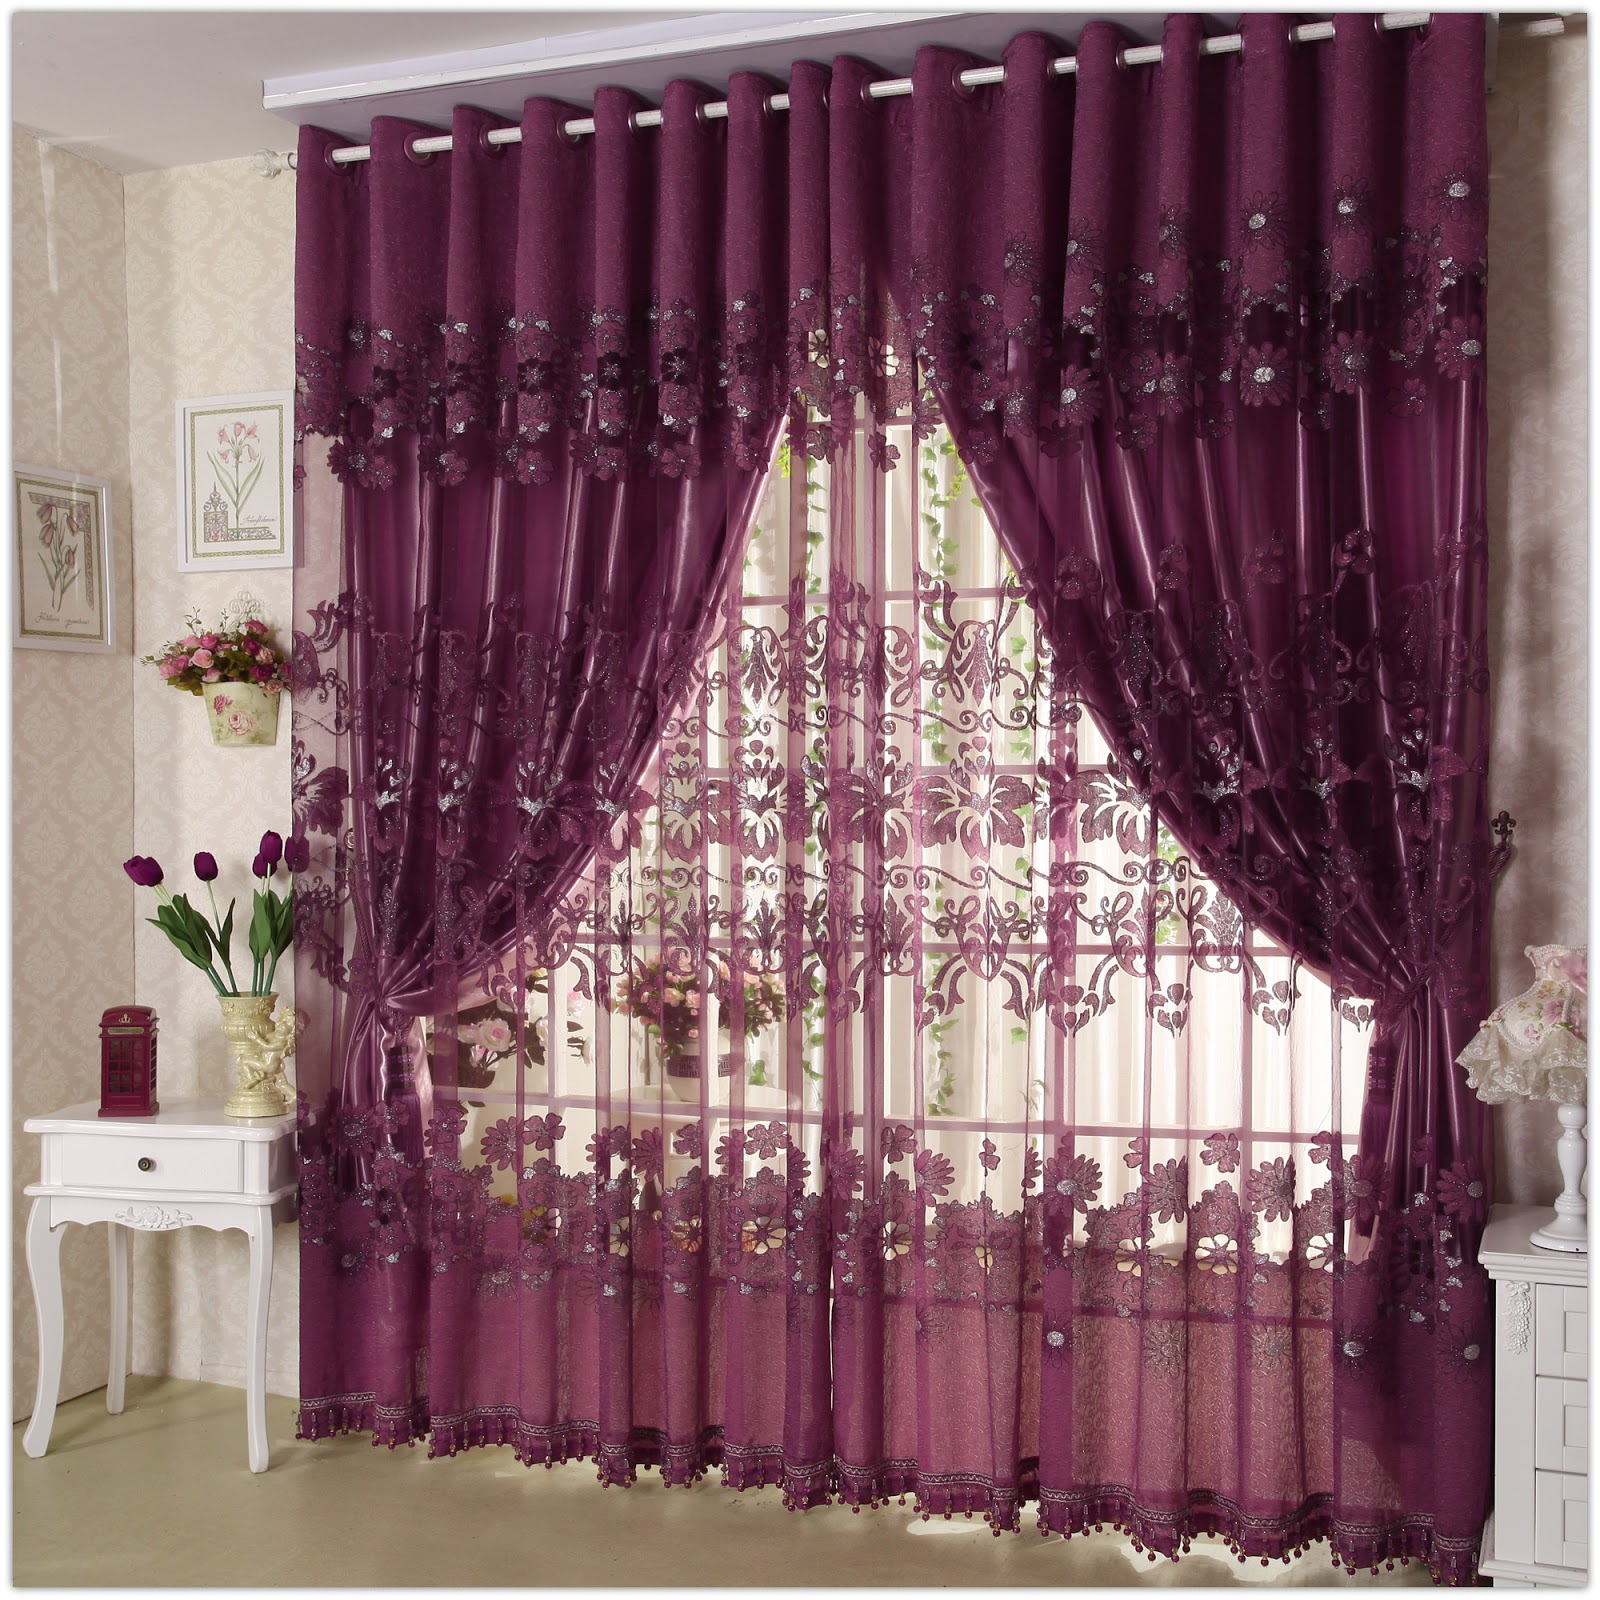 Curtain Frame French Door Frills Fringe From Ceiling